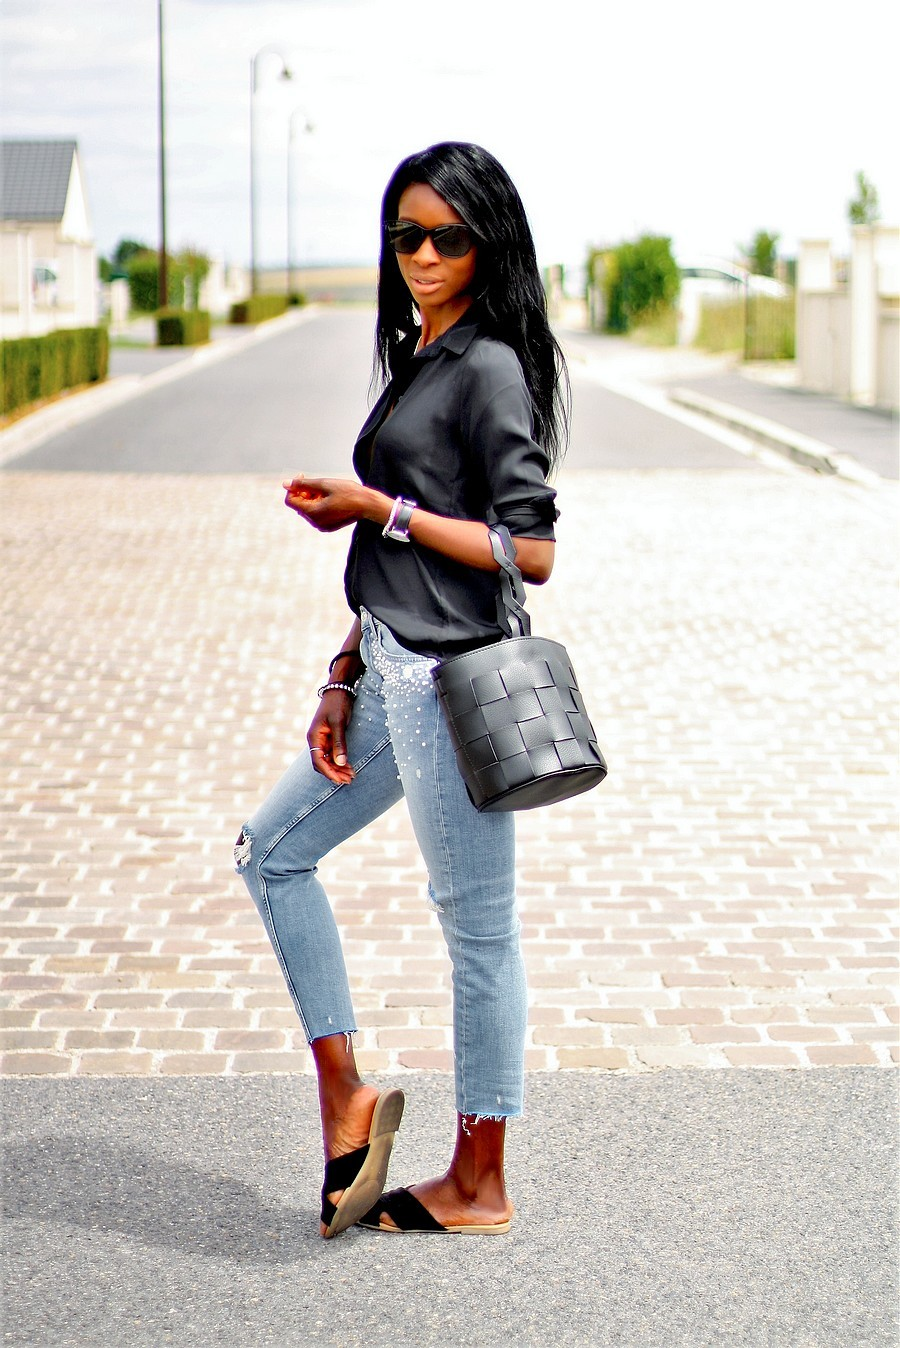 sac-panier-jeans-perles-chemise-style-inpiration